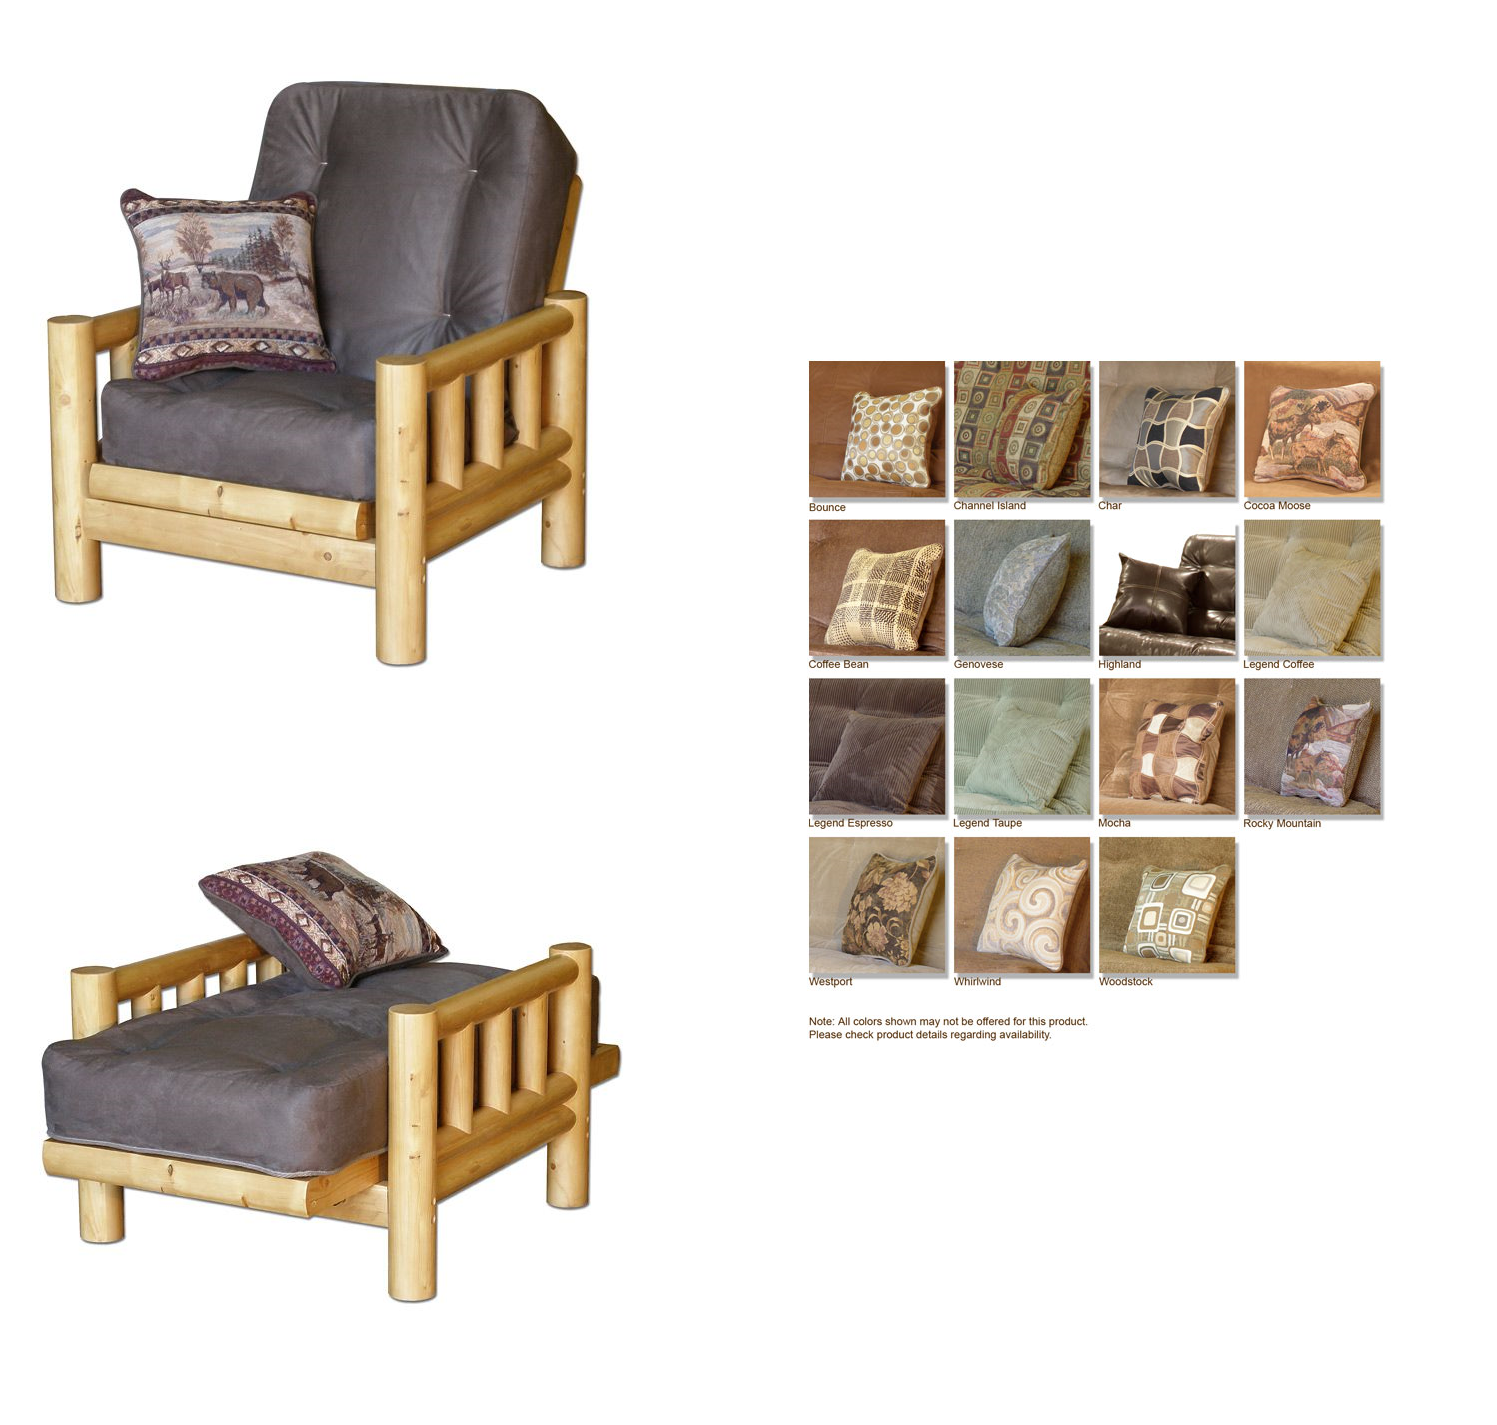 Futon And Chair Set Blue Parsons Tahoe Log With Cover At Www Dcgstores Com Sales 495 00